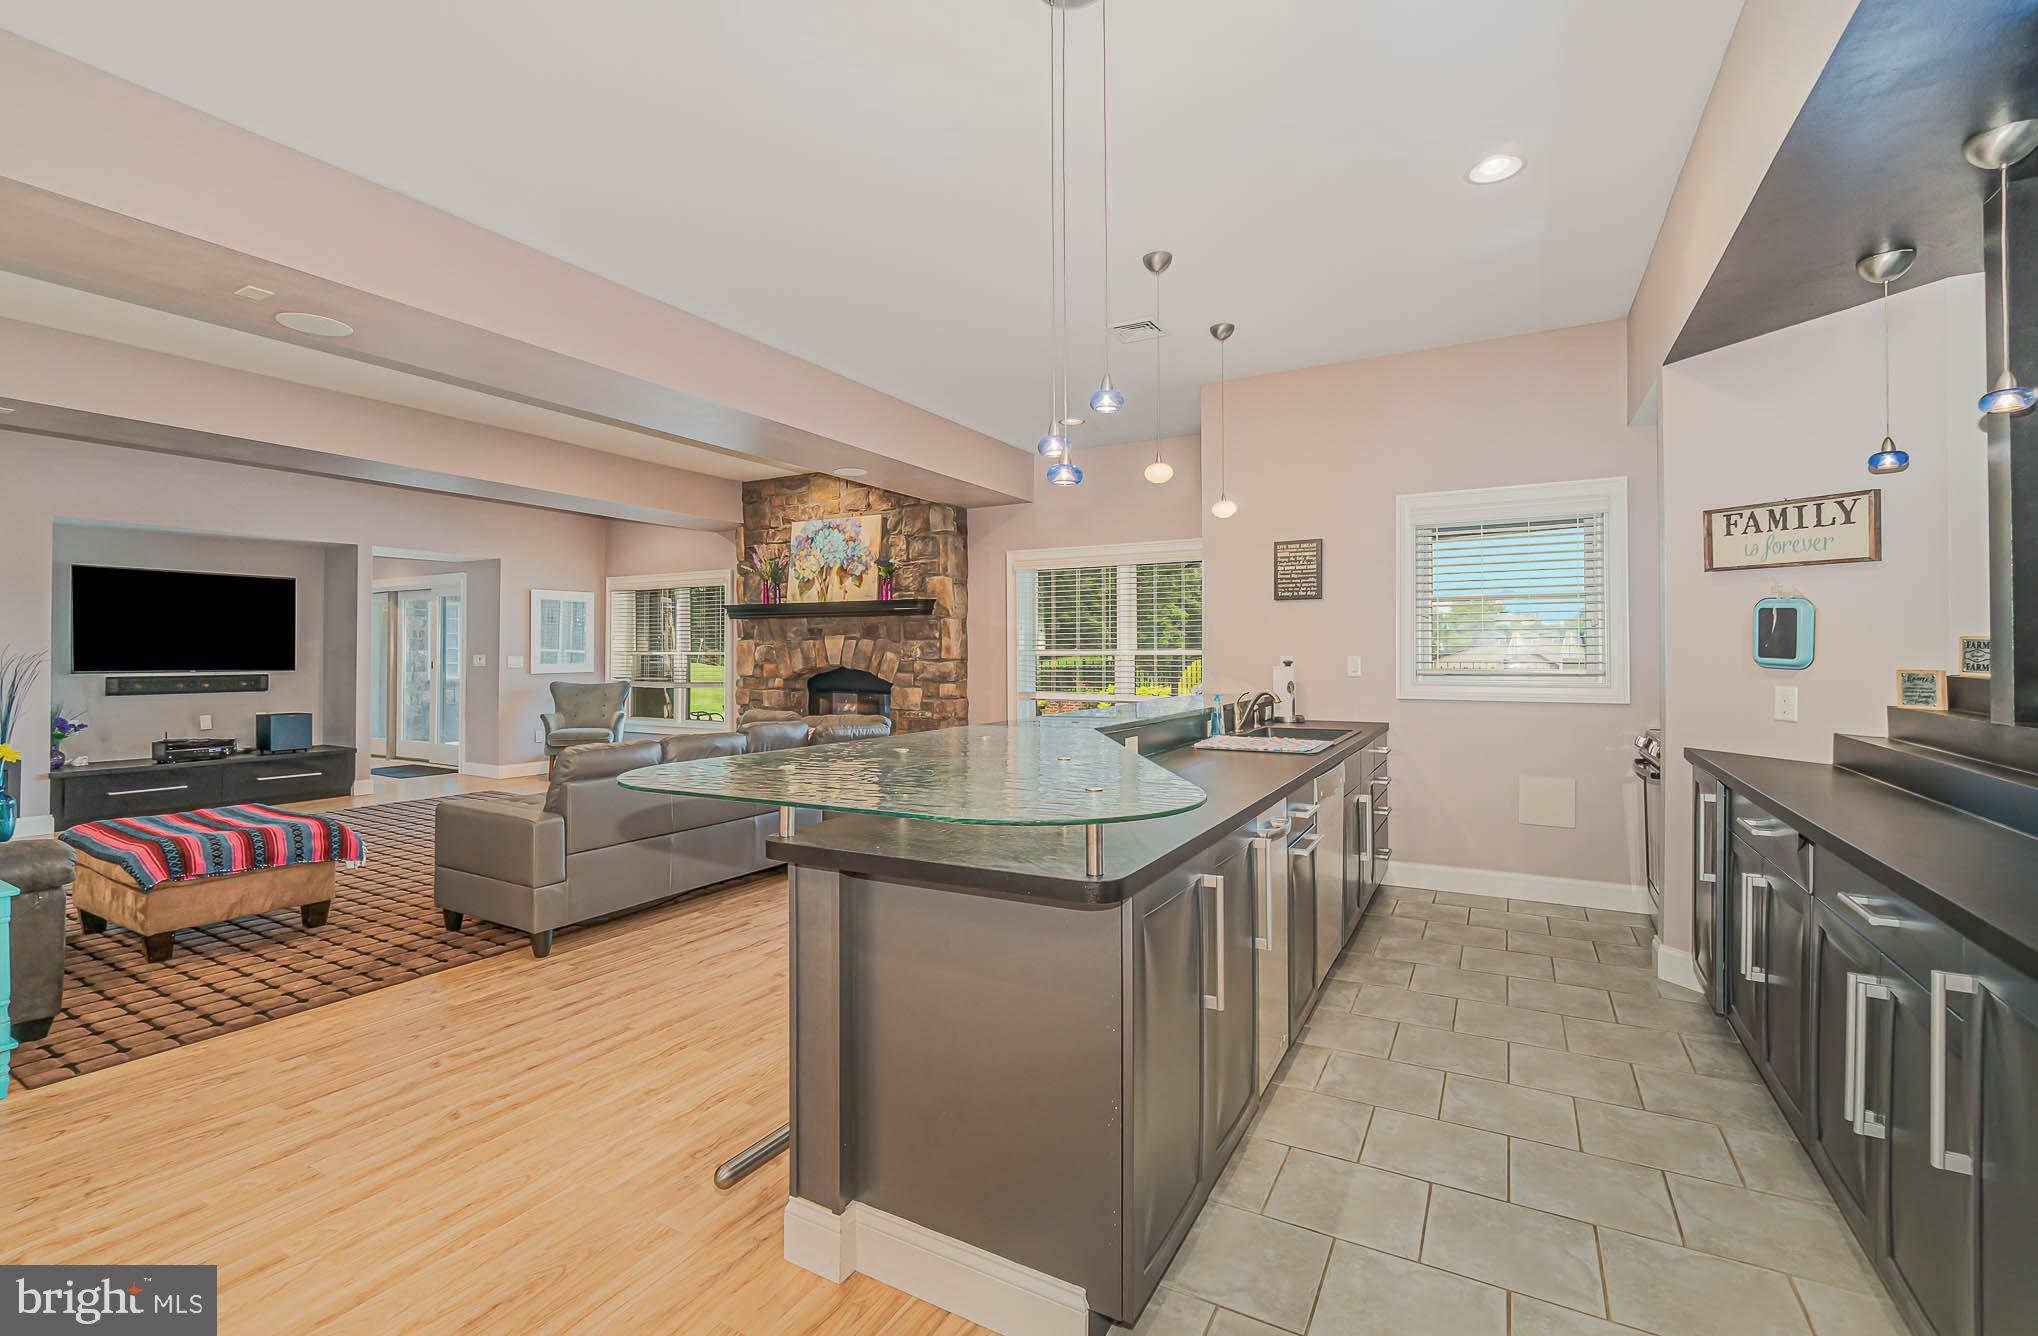 LL - 2nd Kitchen great for entertaining